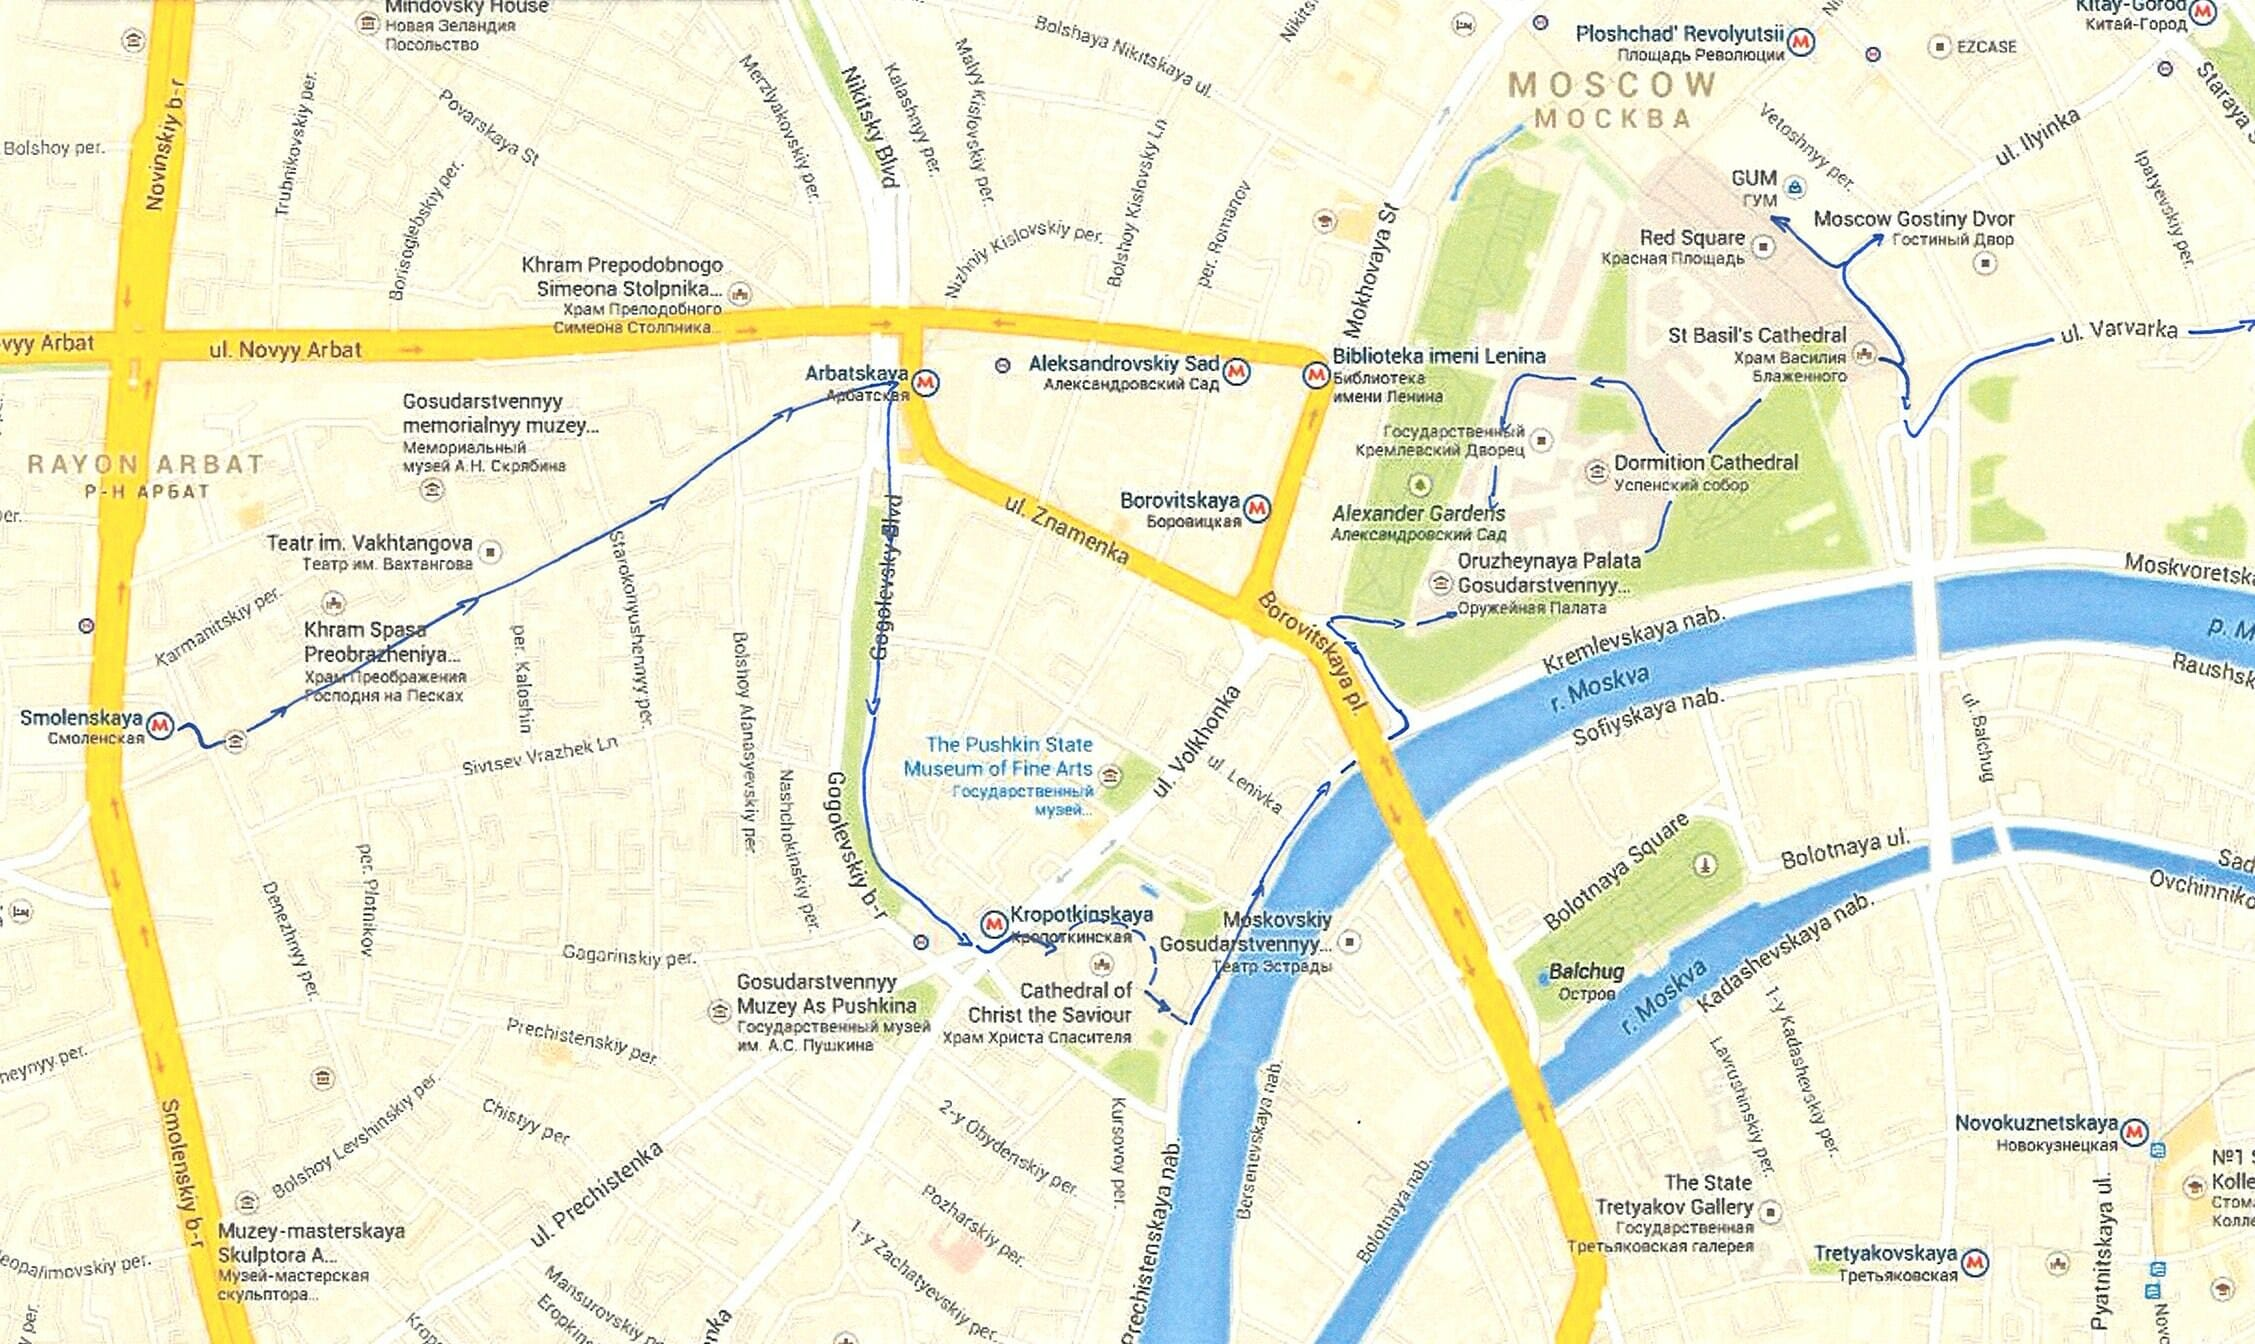 Day 1 Moscow walking map